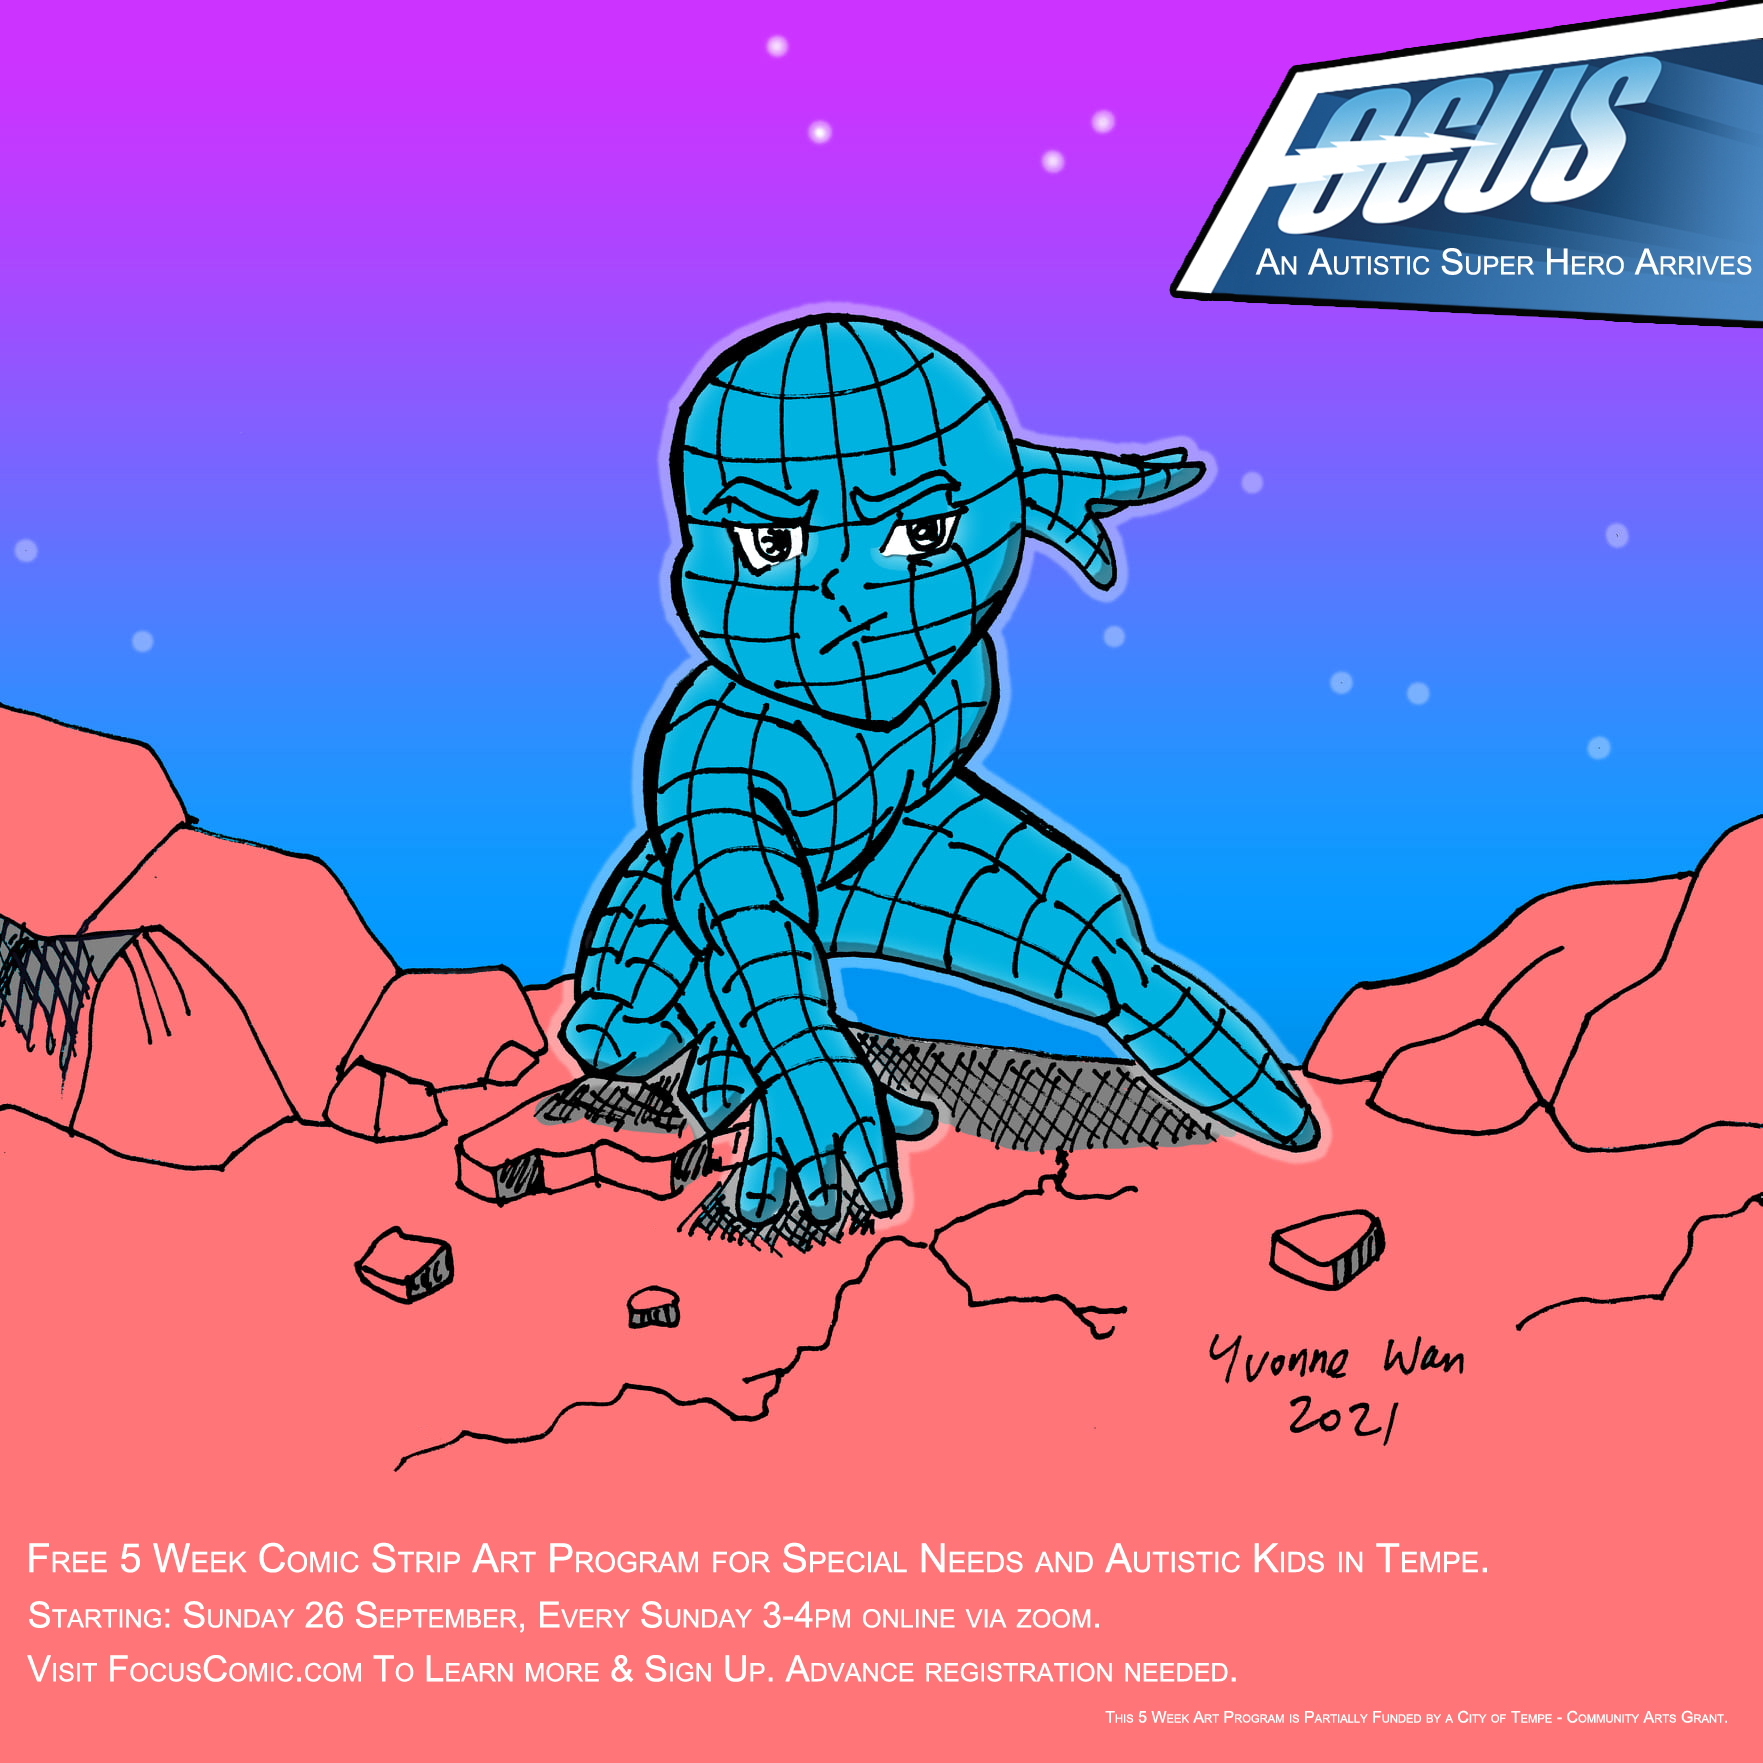 Free Focus Comic Strip 5 week art program for Special Needs and Autistic Kids in Tempe